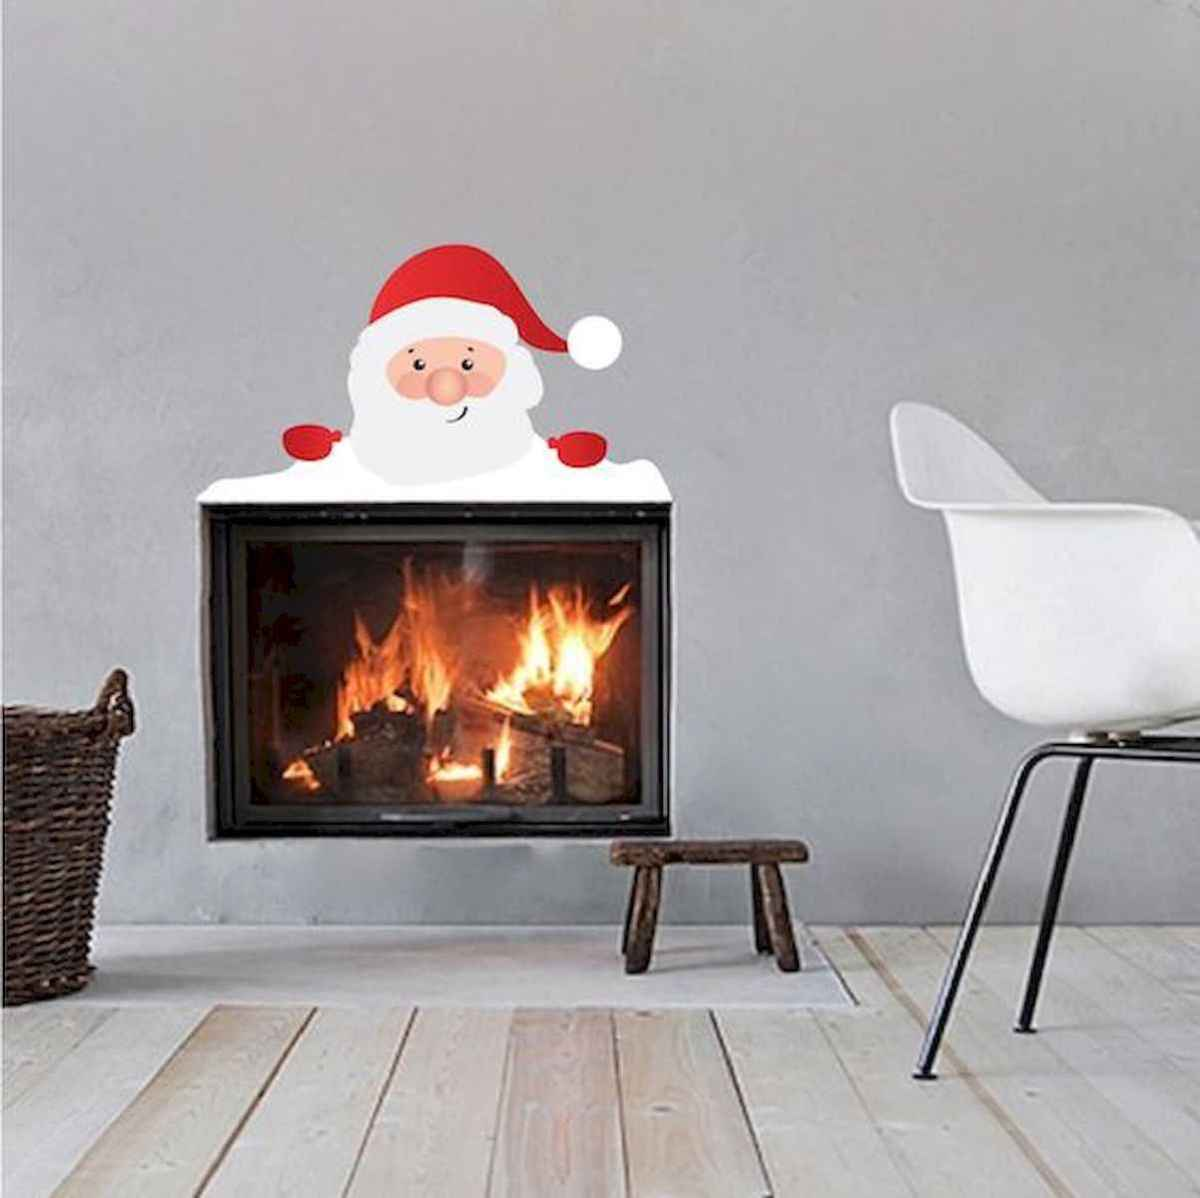 35 awesome apartment christmas decorations ideas (17)